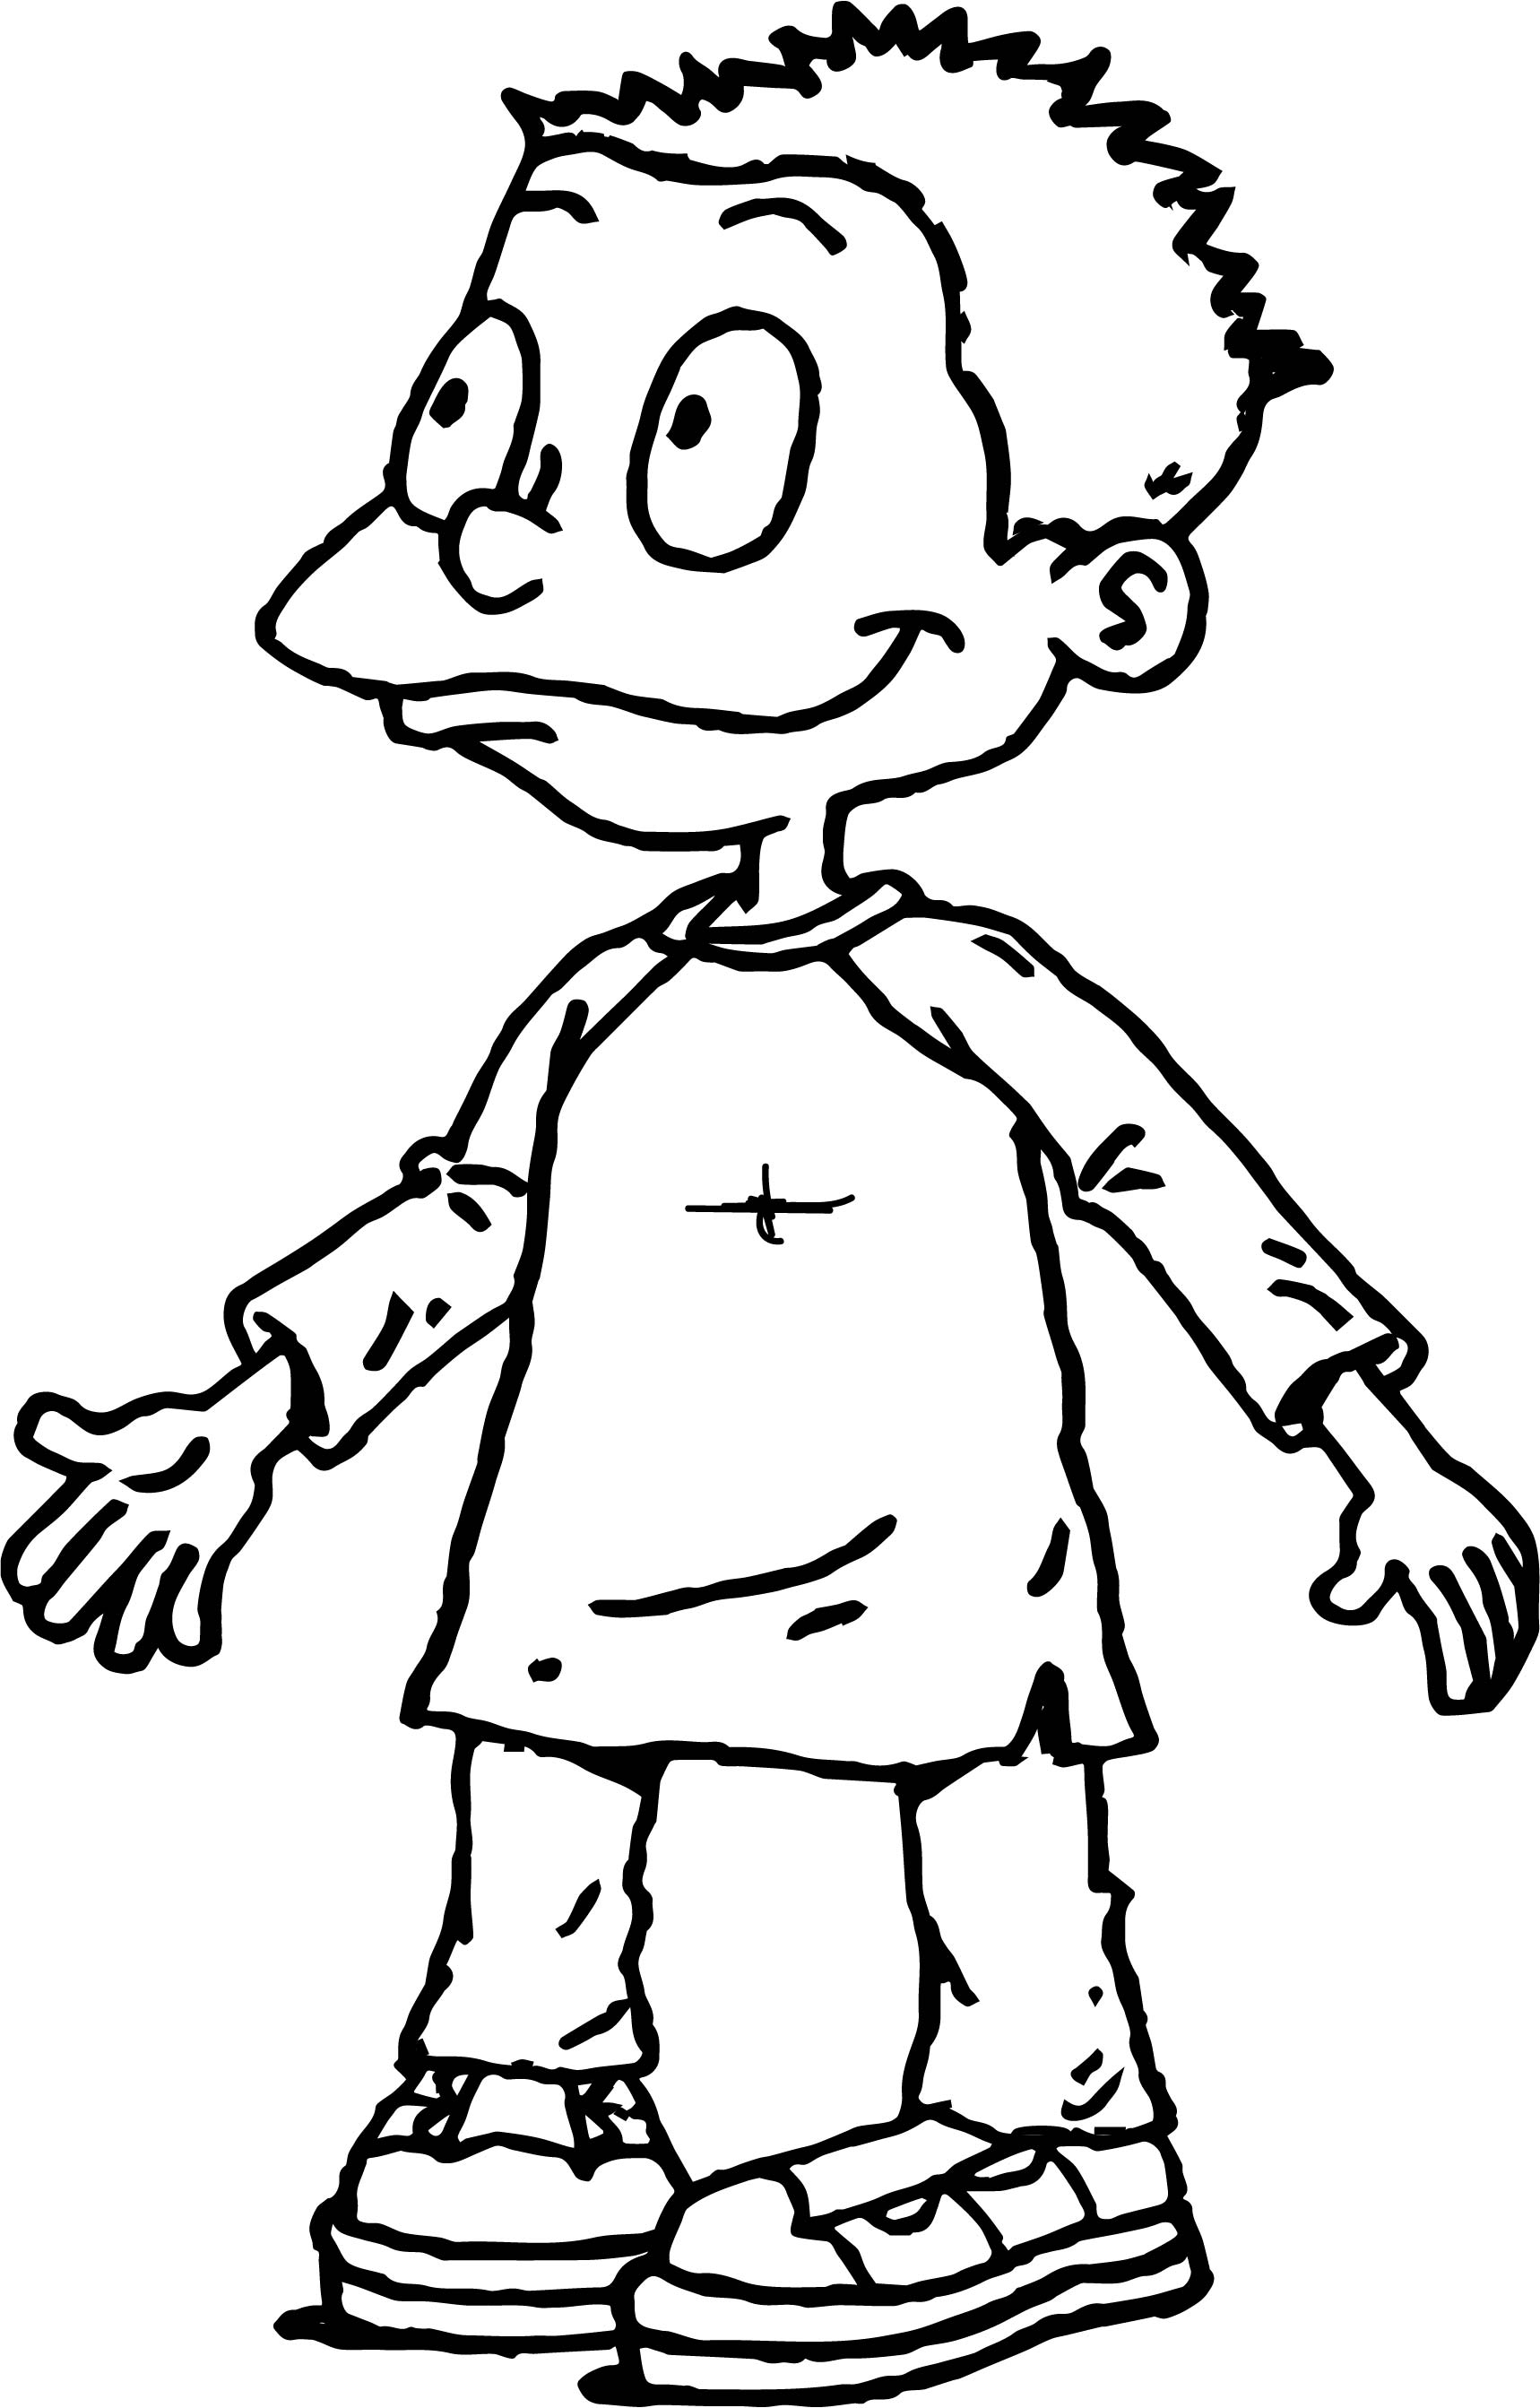 Tommy Pickles Rugrats All Grown Up Coloring Page | Wecoloringpage